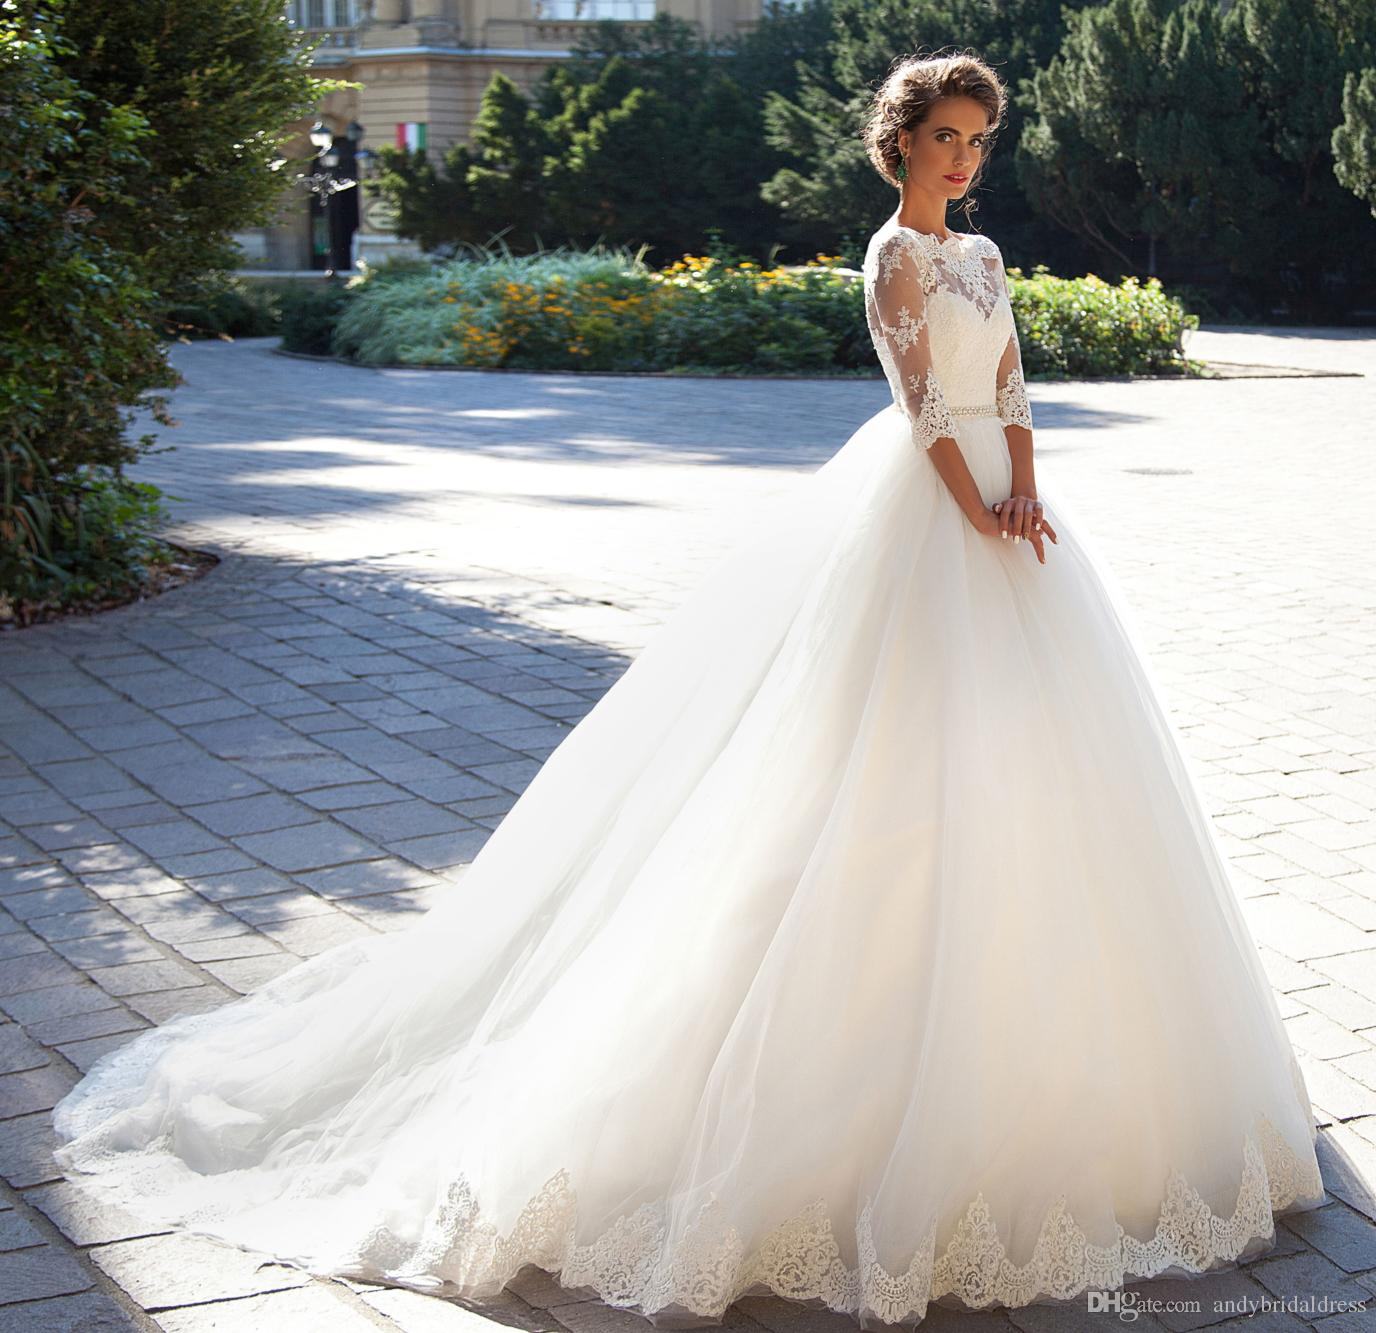 Modest Vintage Lace Millanova 2019 Wedding Dresses Bateau With Half Long Sleeves Pearls White Tulle Wedding Ball Gowns Cheap Bridal Dresses